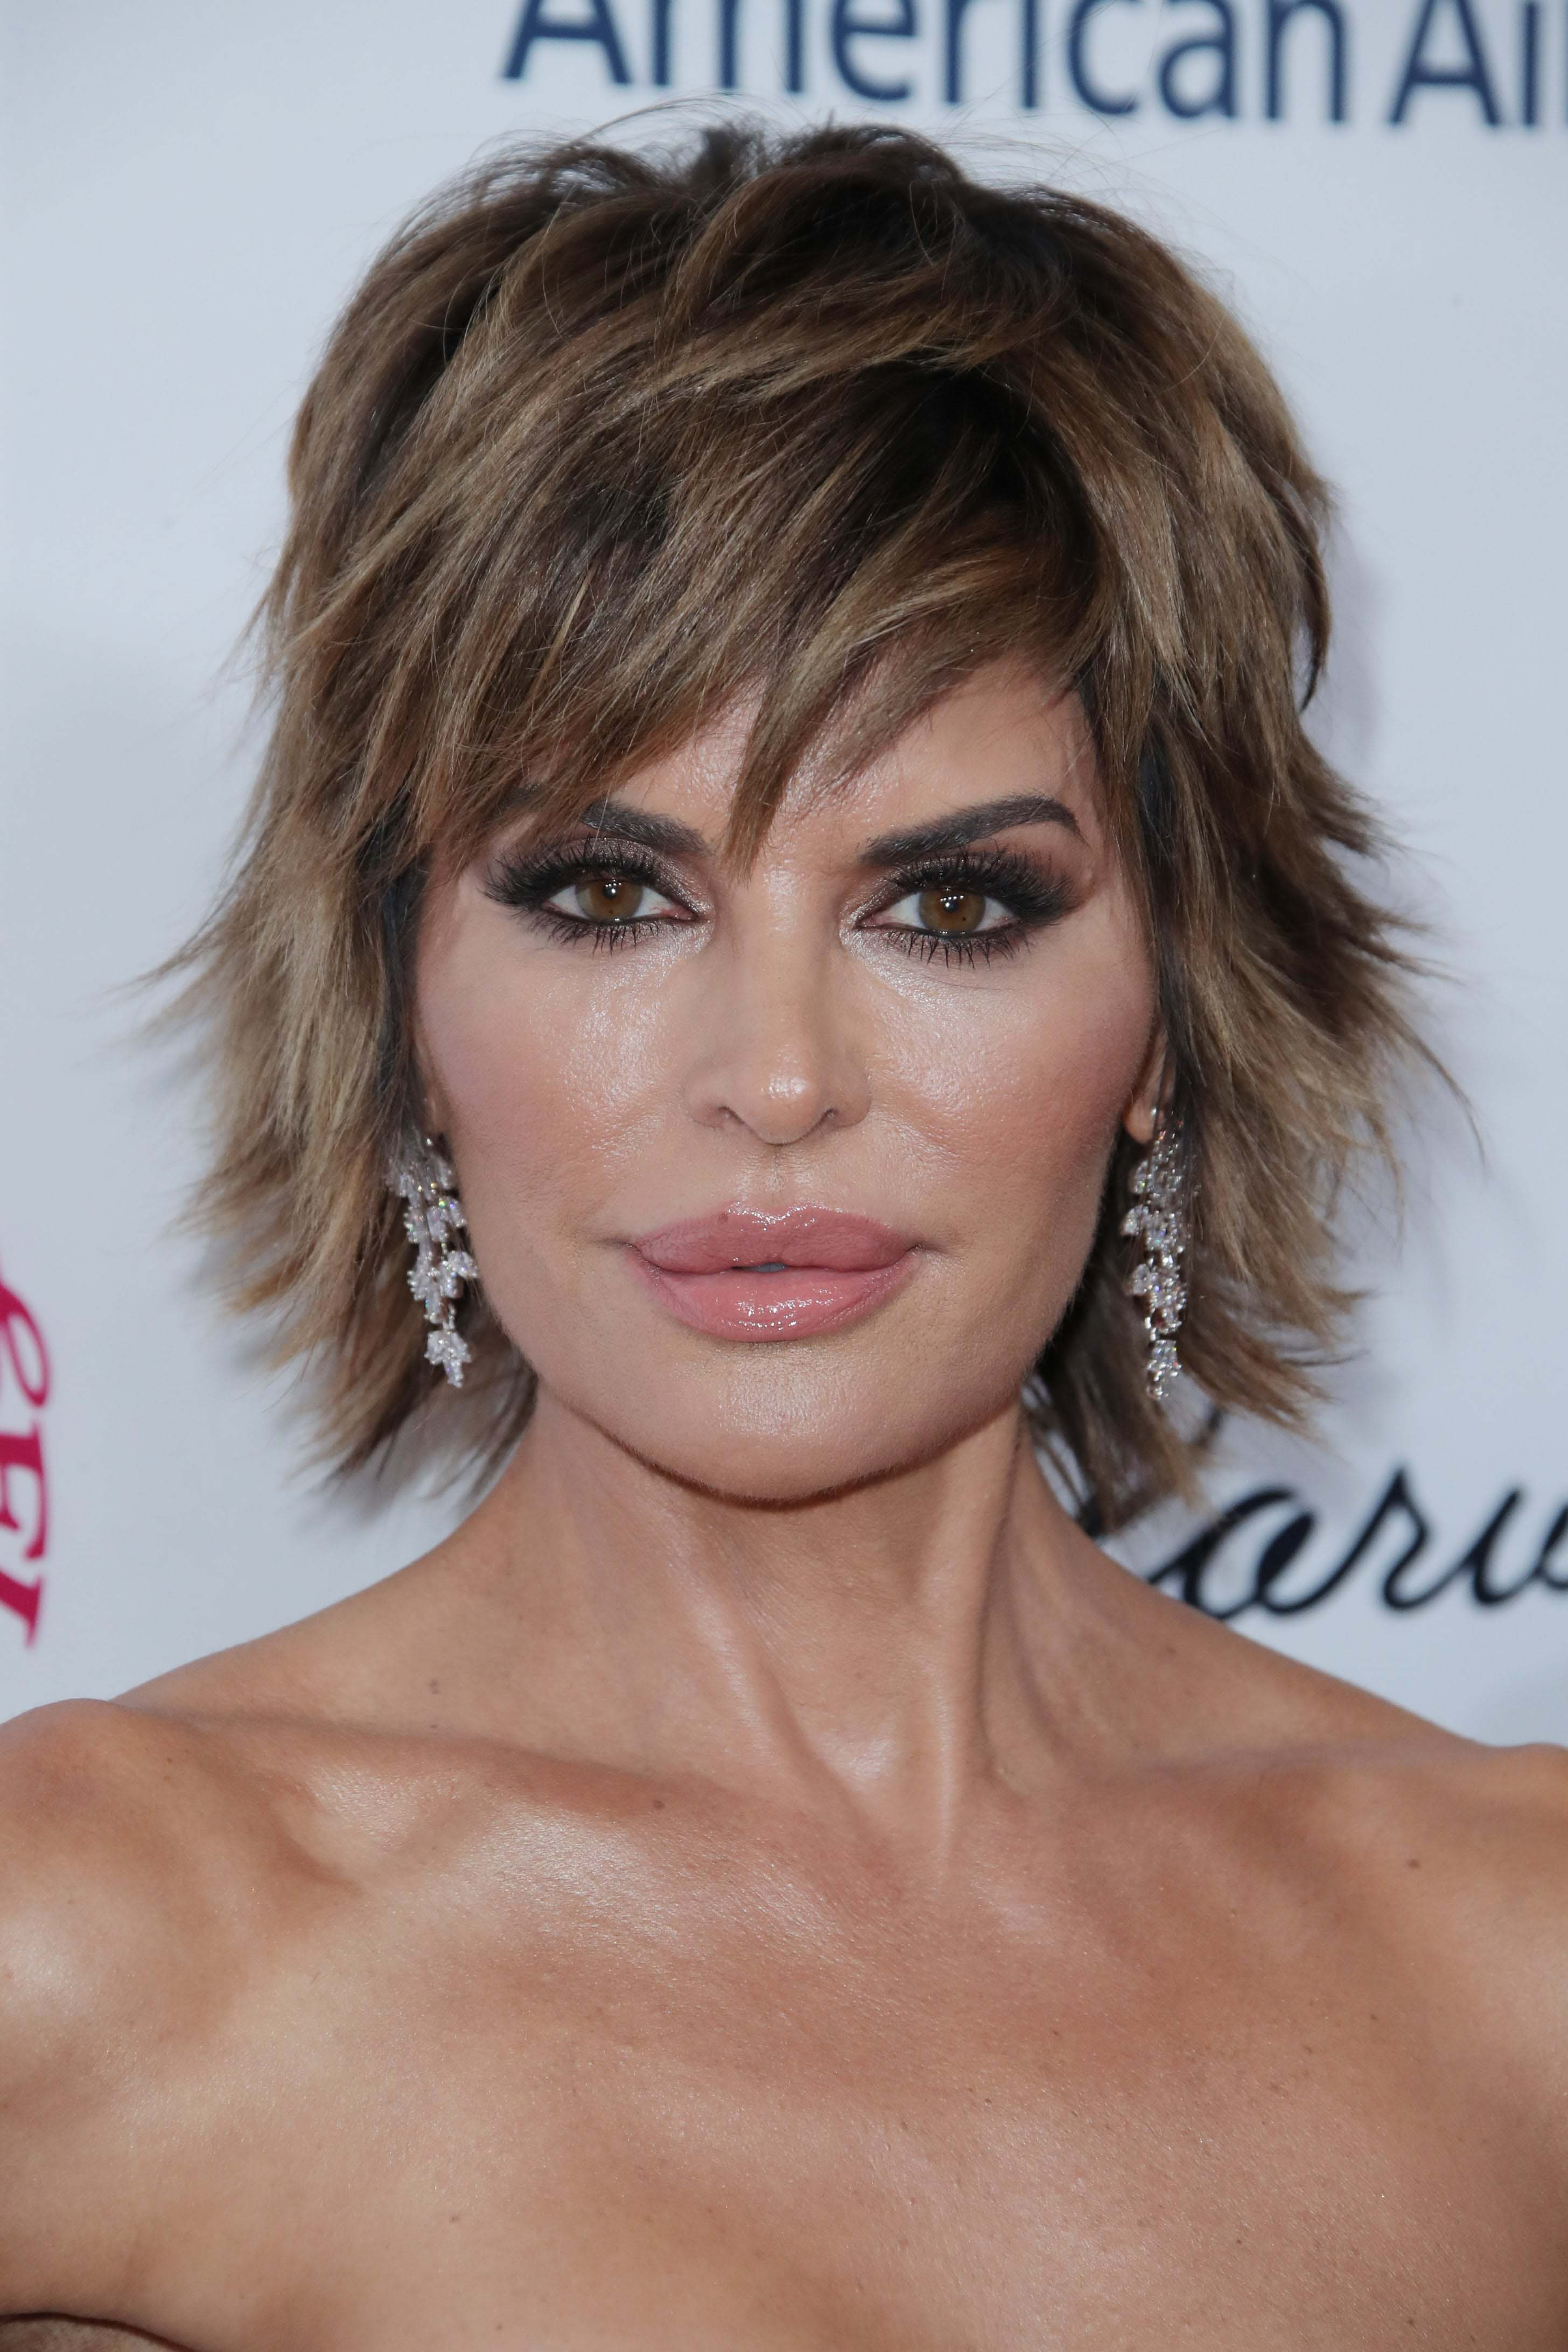 short hairstyles for women over 40: Lisa Rinna with feathered layered short haircut